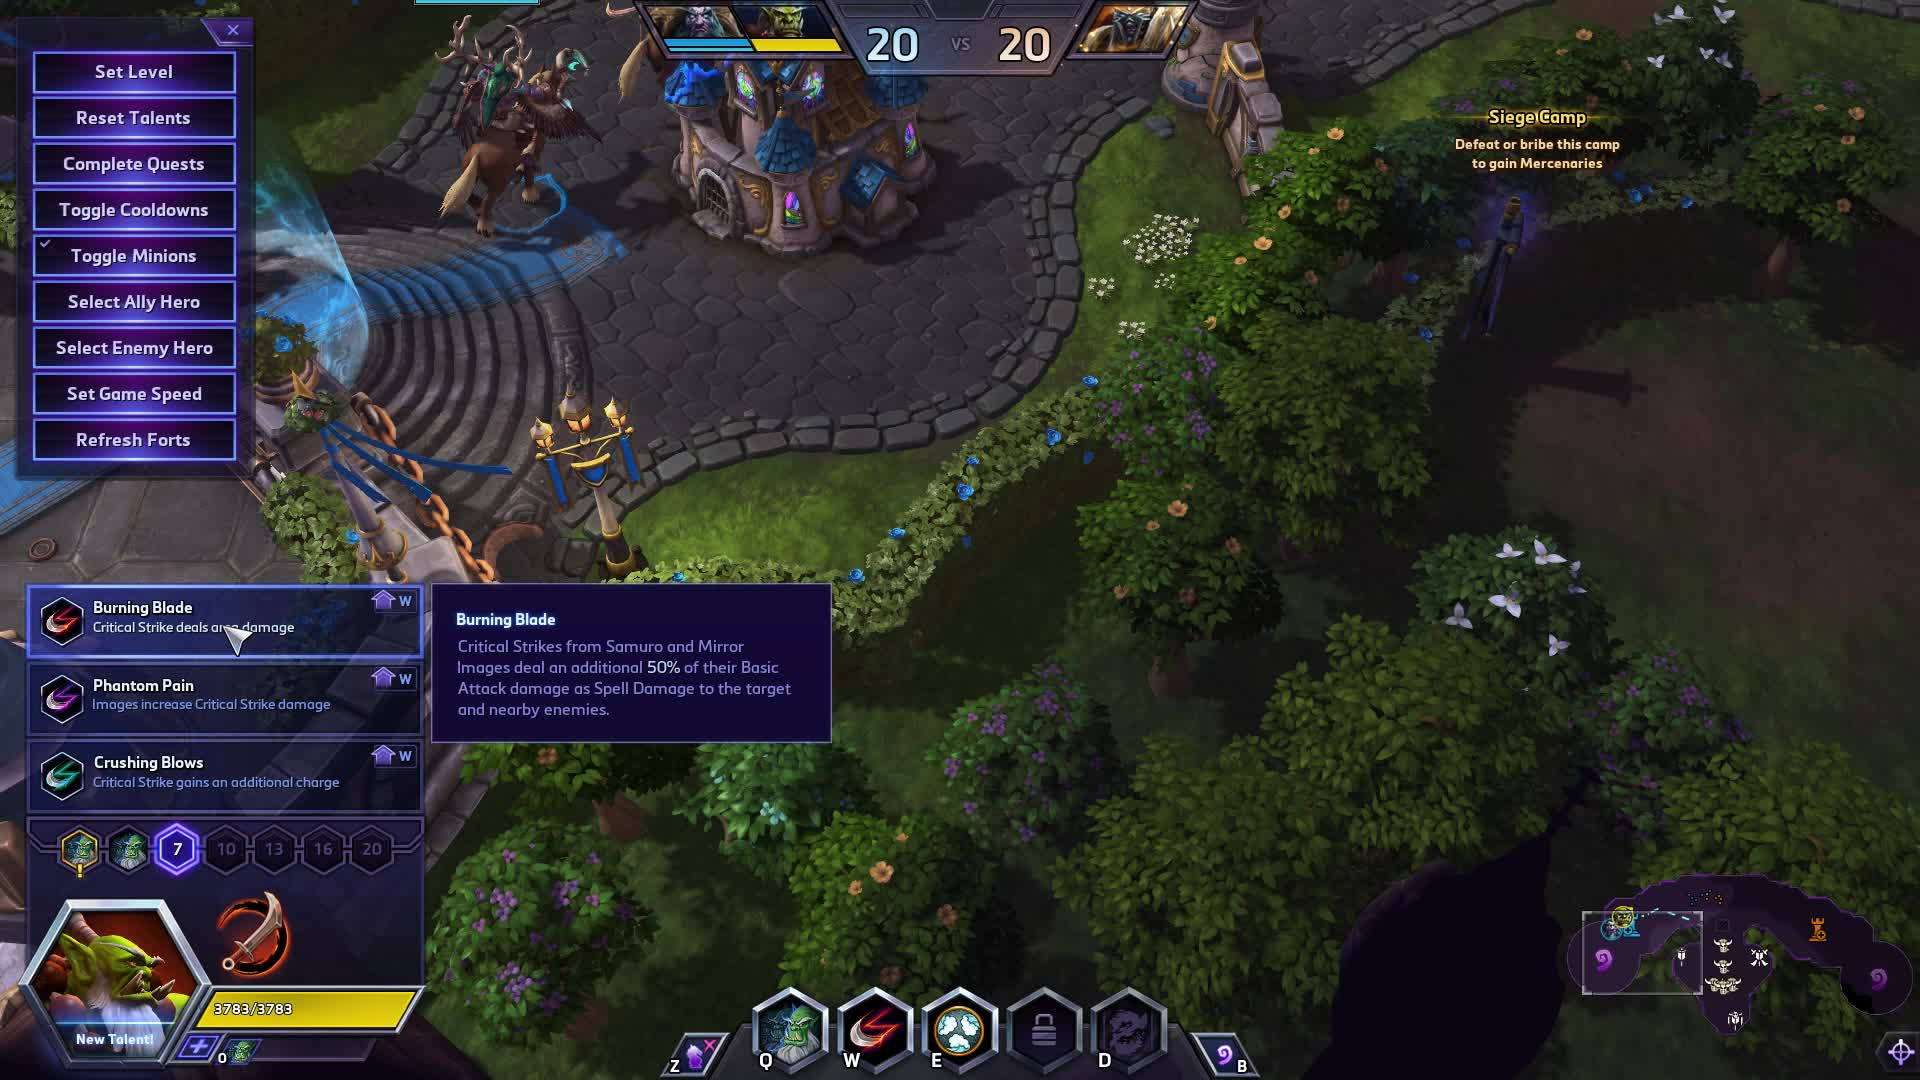 heroesofthestorm, Heroes of the Storm 2018.11.23 - 19.42.45.05.DVR GIFs